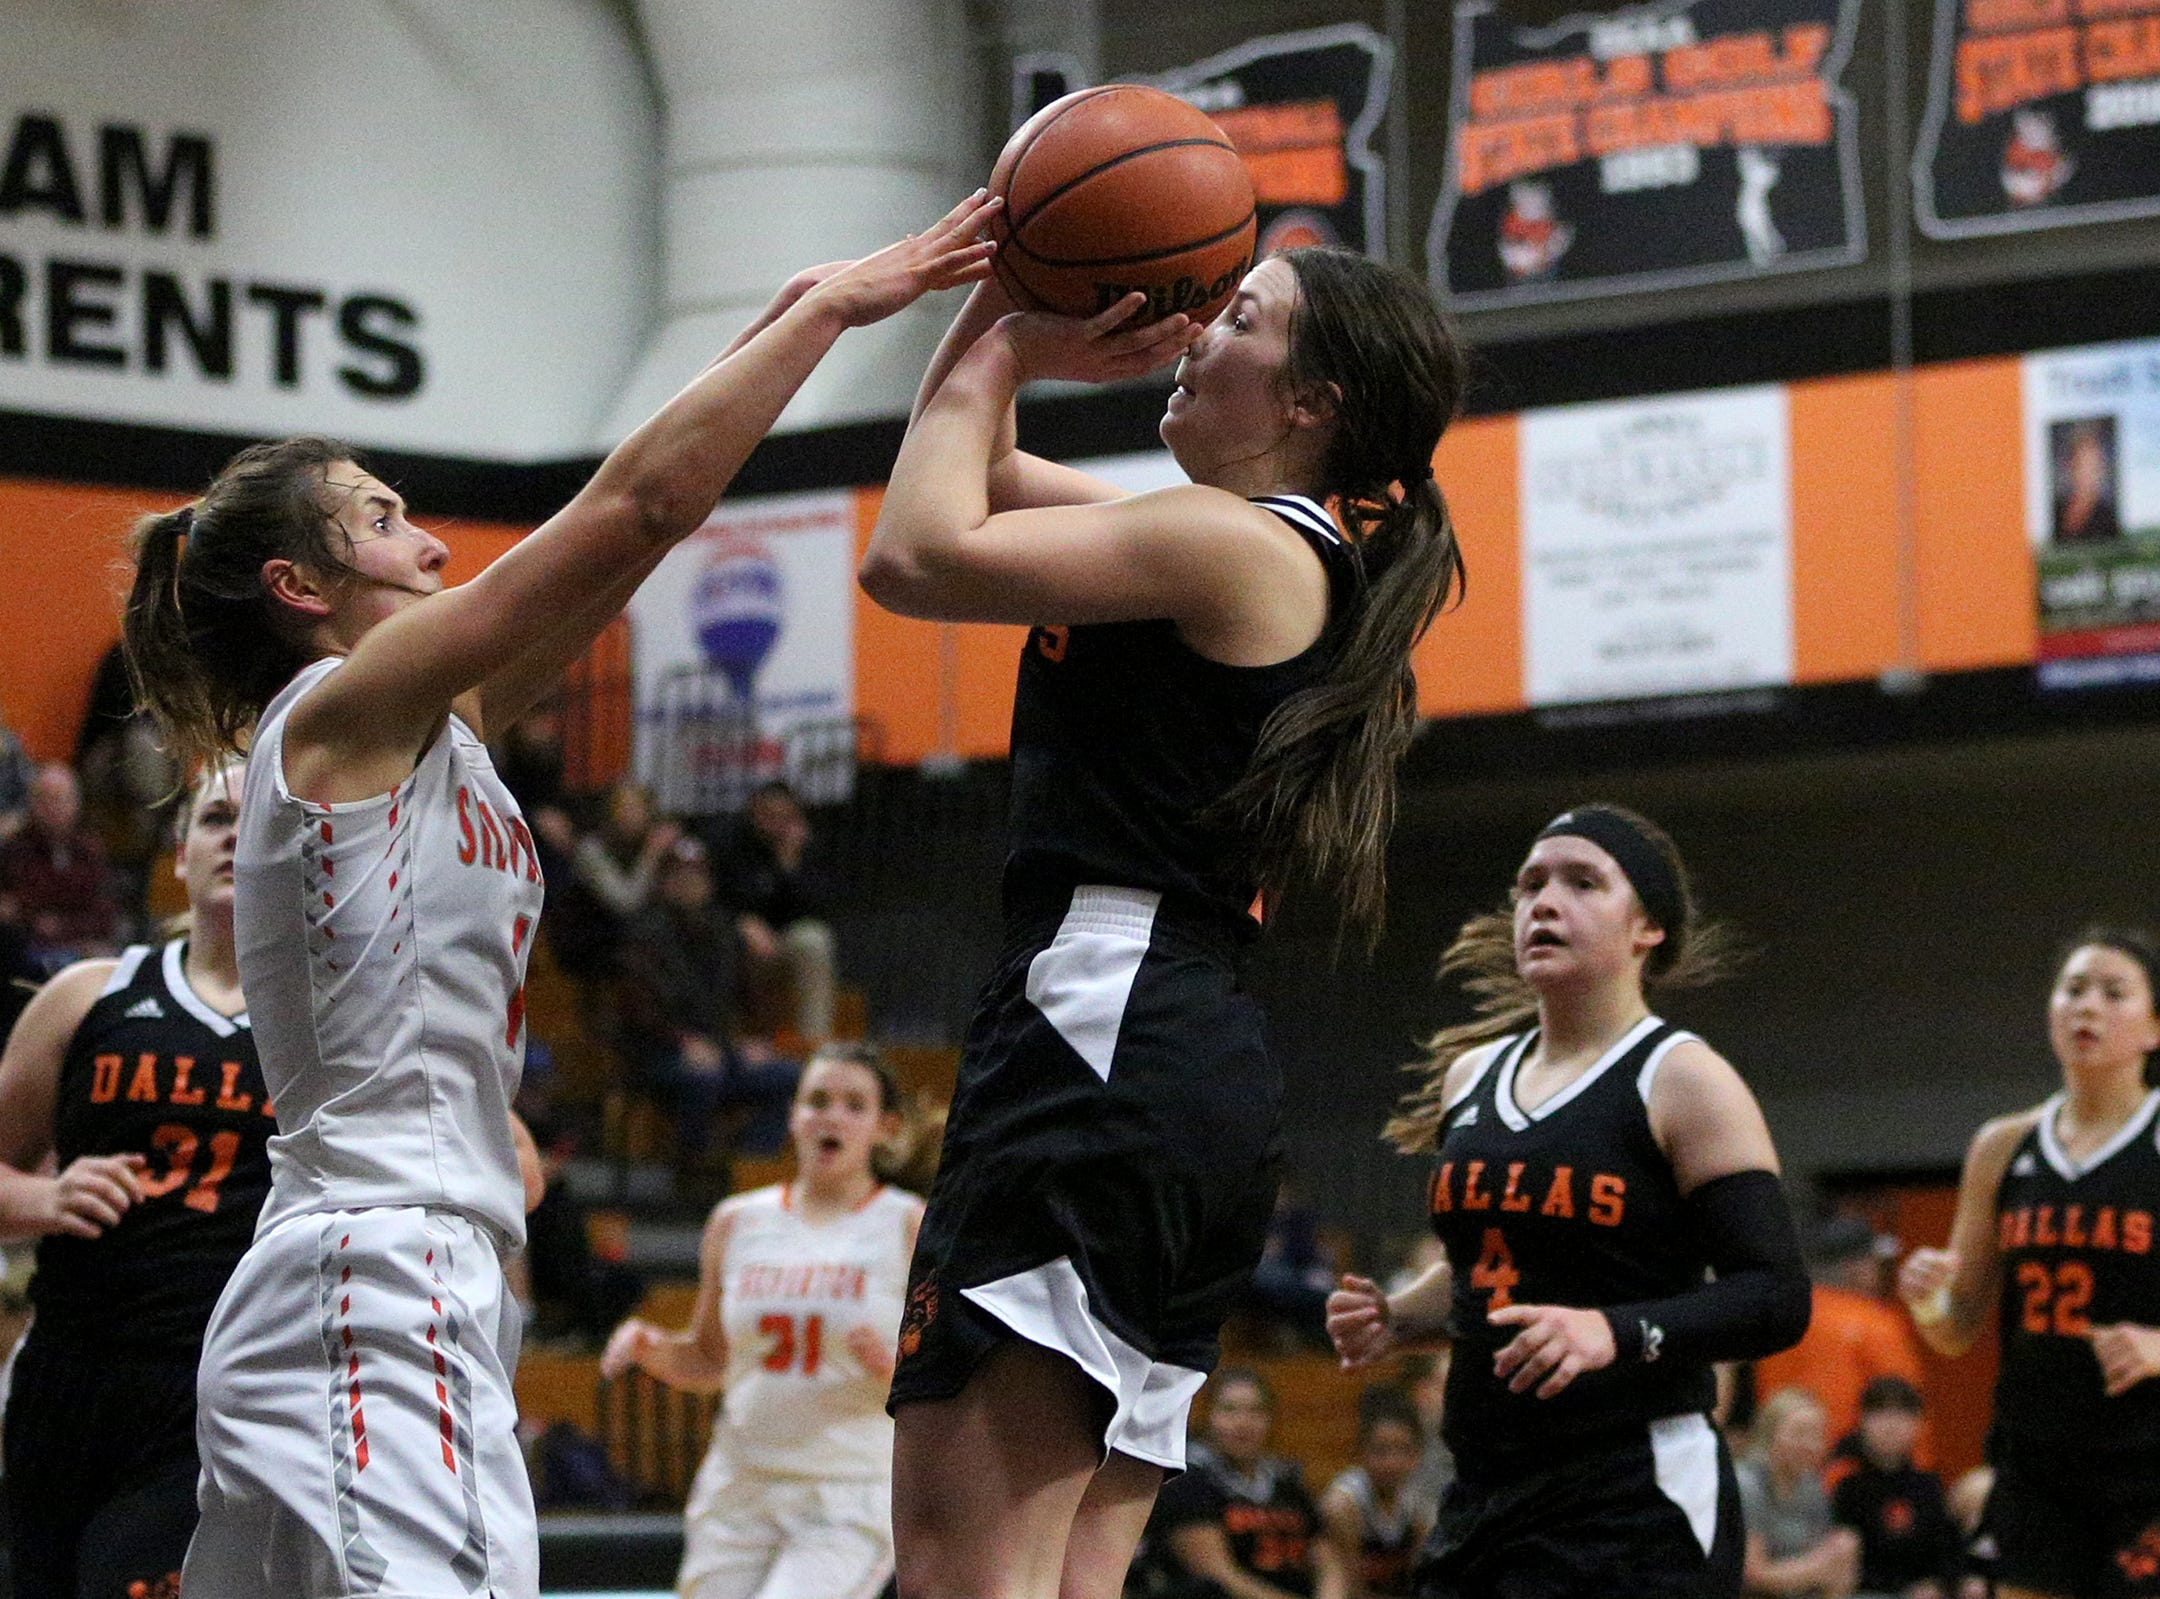 Dallas' Emma Classen (3) protects the ball against Silverton's defense during the Dallas High School vs. Silverton High School girls basketball game in Silverton on Tuesday, Dec. 8, 2019.